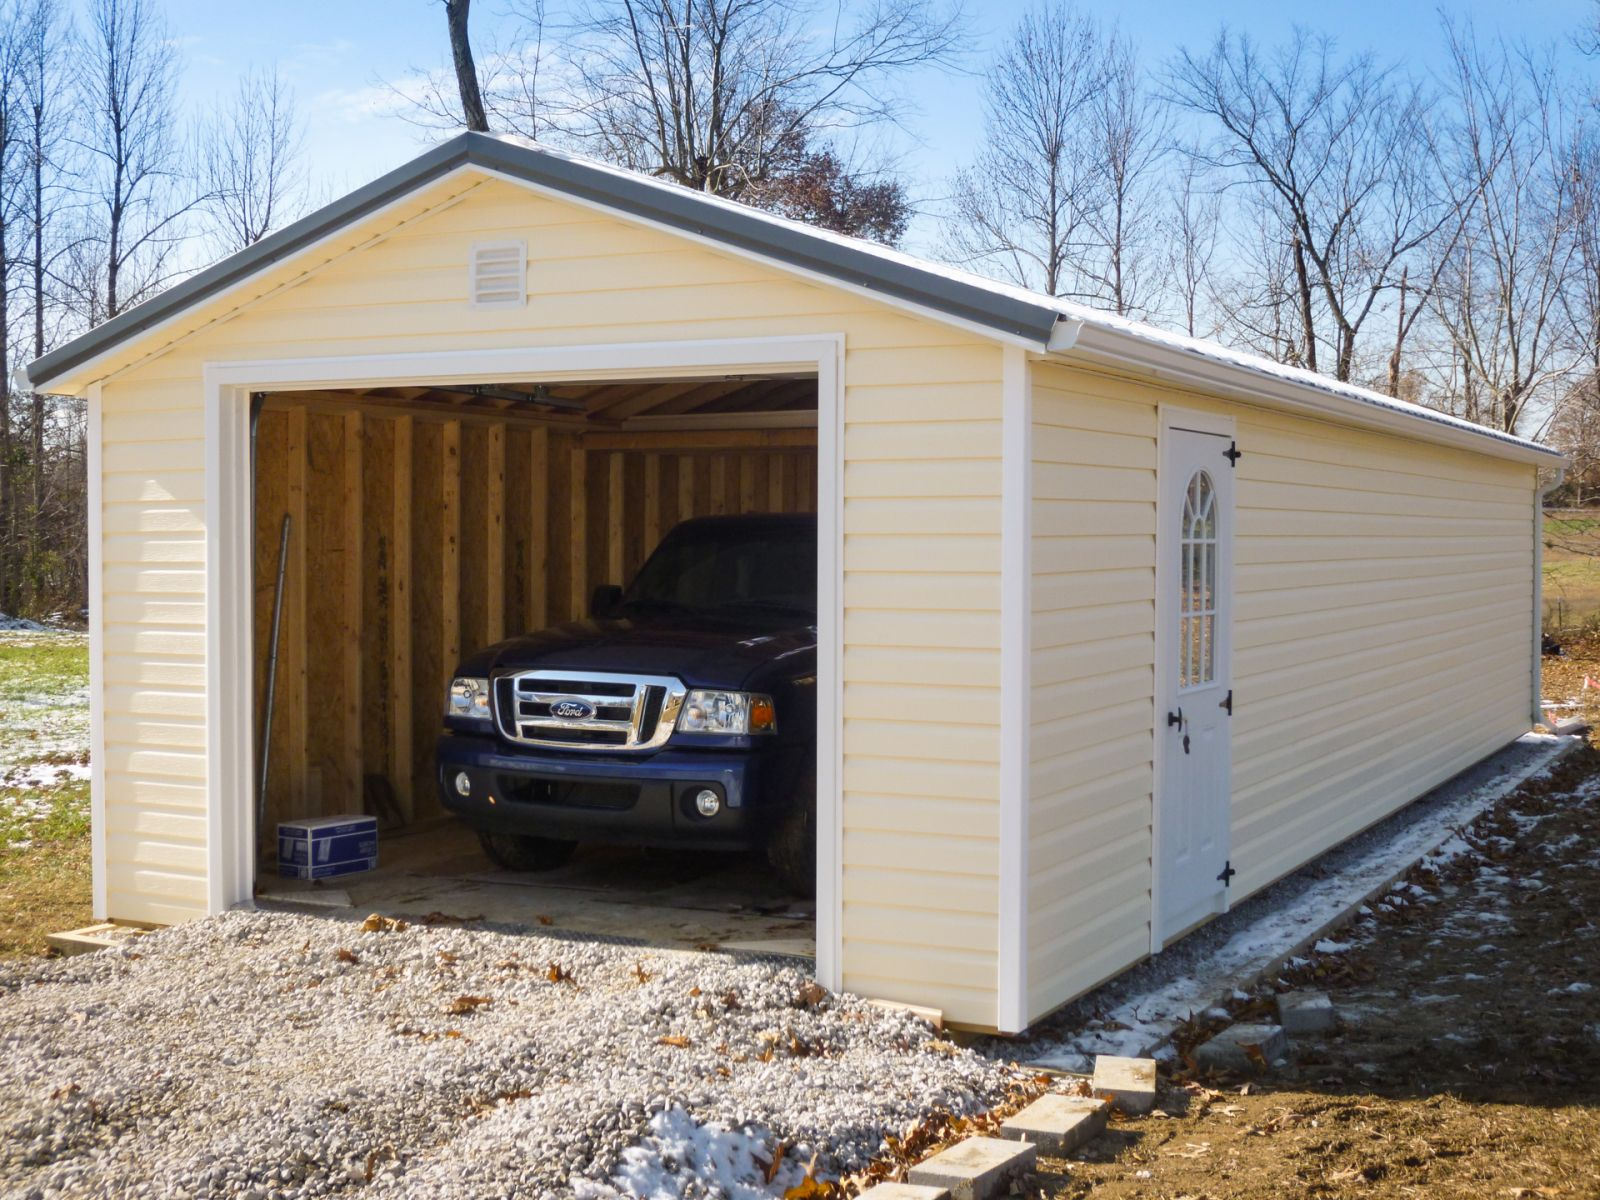 A portable garage for sale near Radcliff, KY